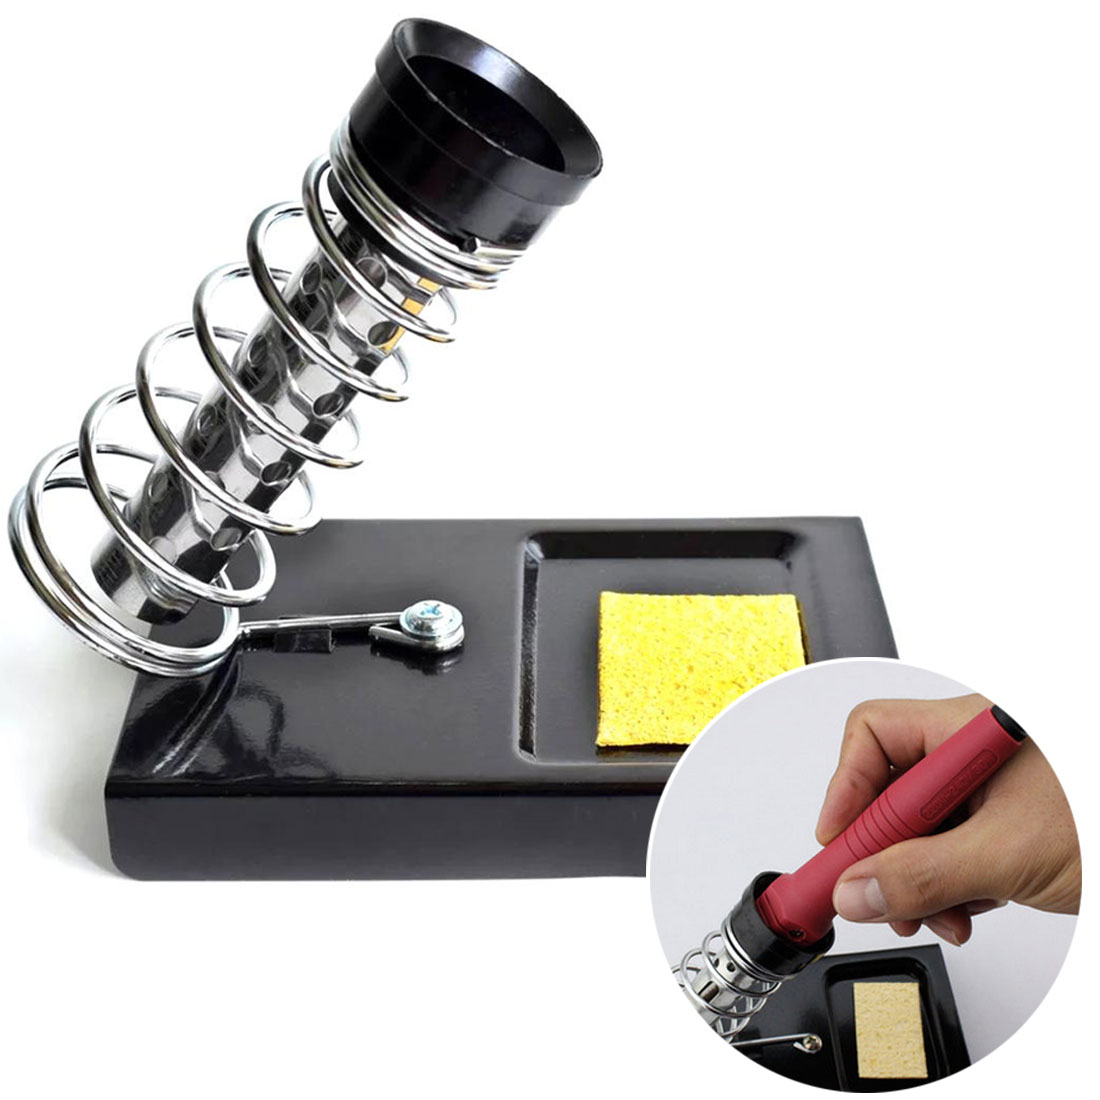 Soldering Iron Stand Holder Electric Soldering Irons Base Station High Temperature Resistance